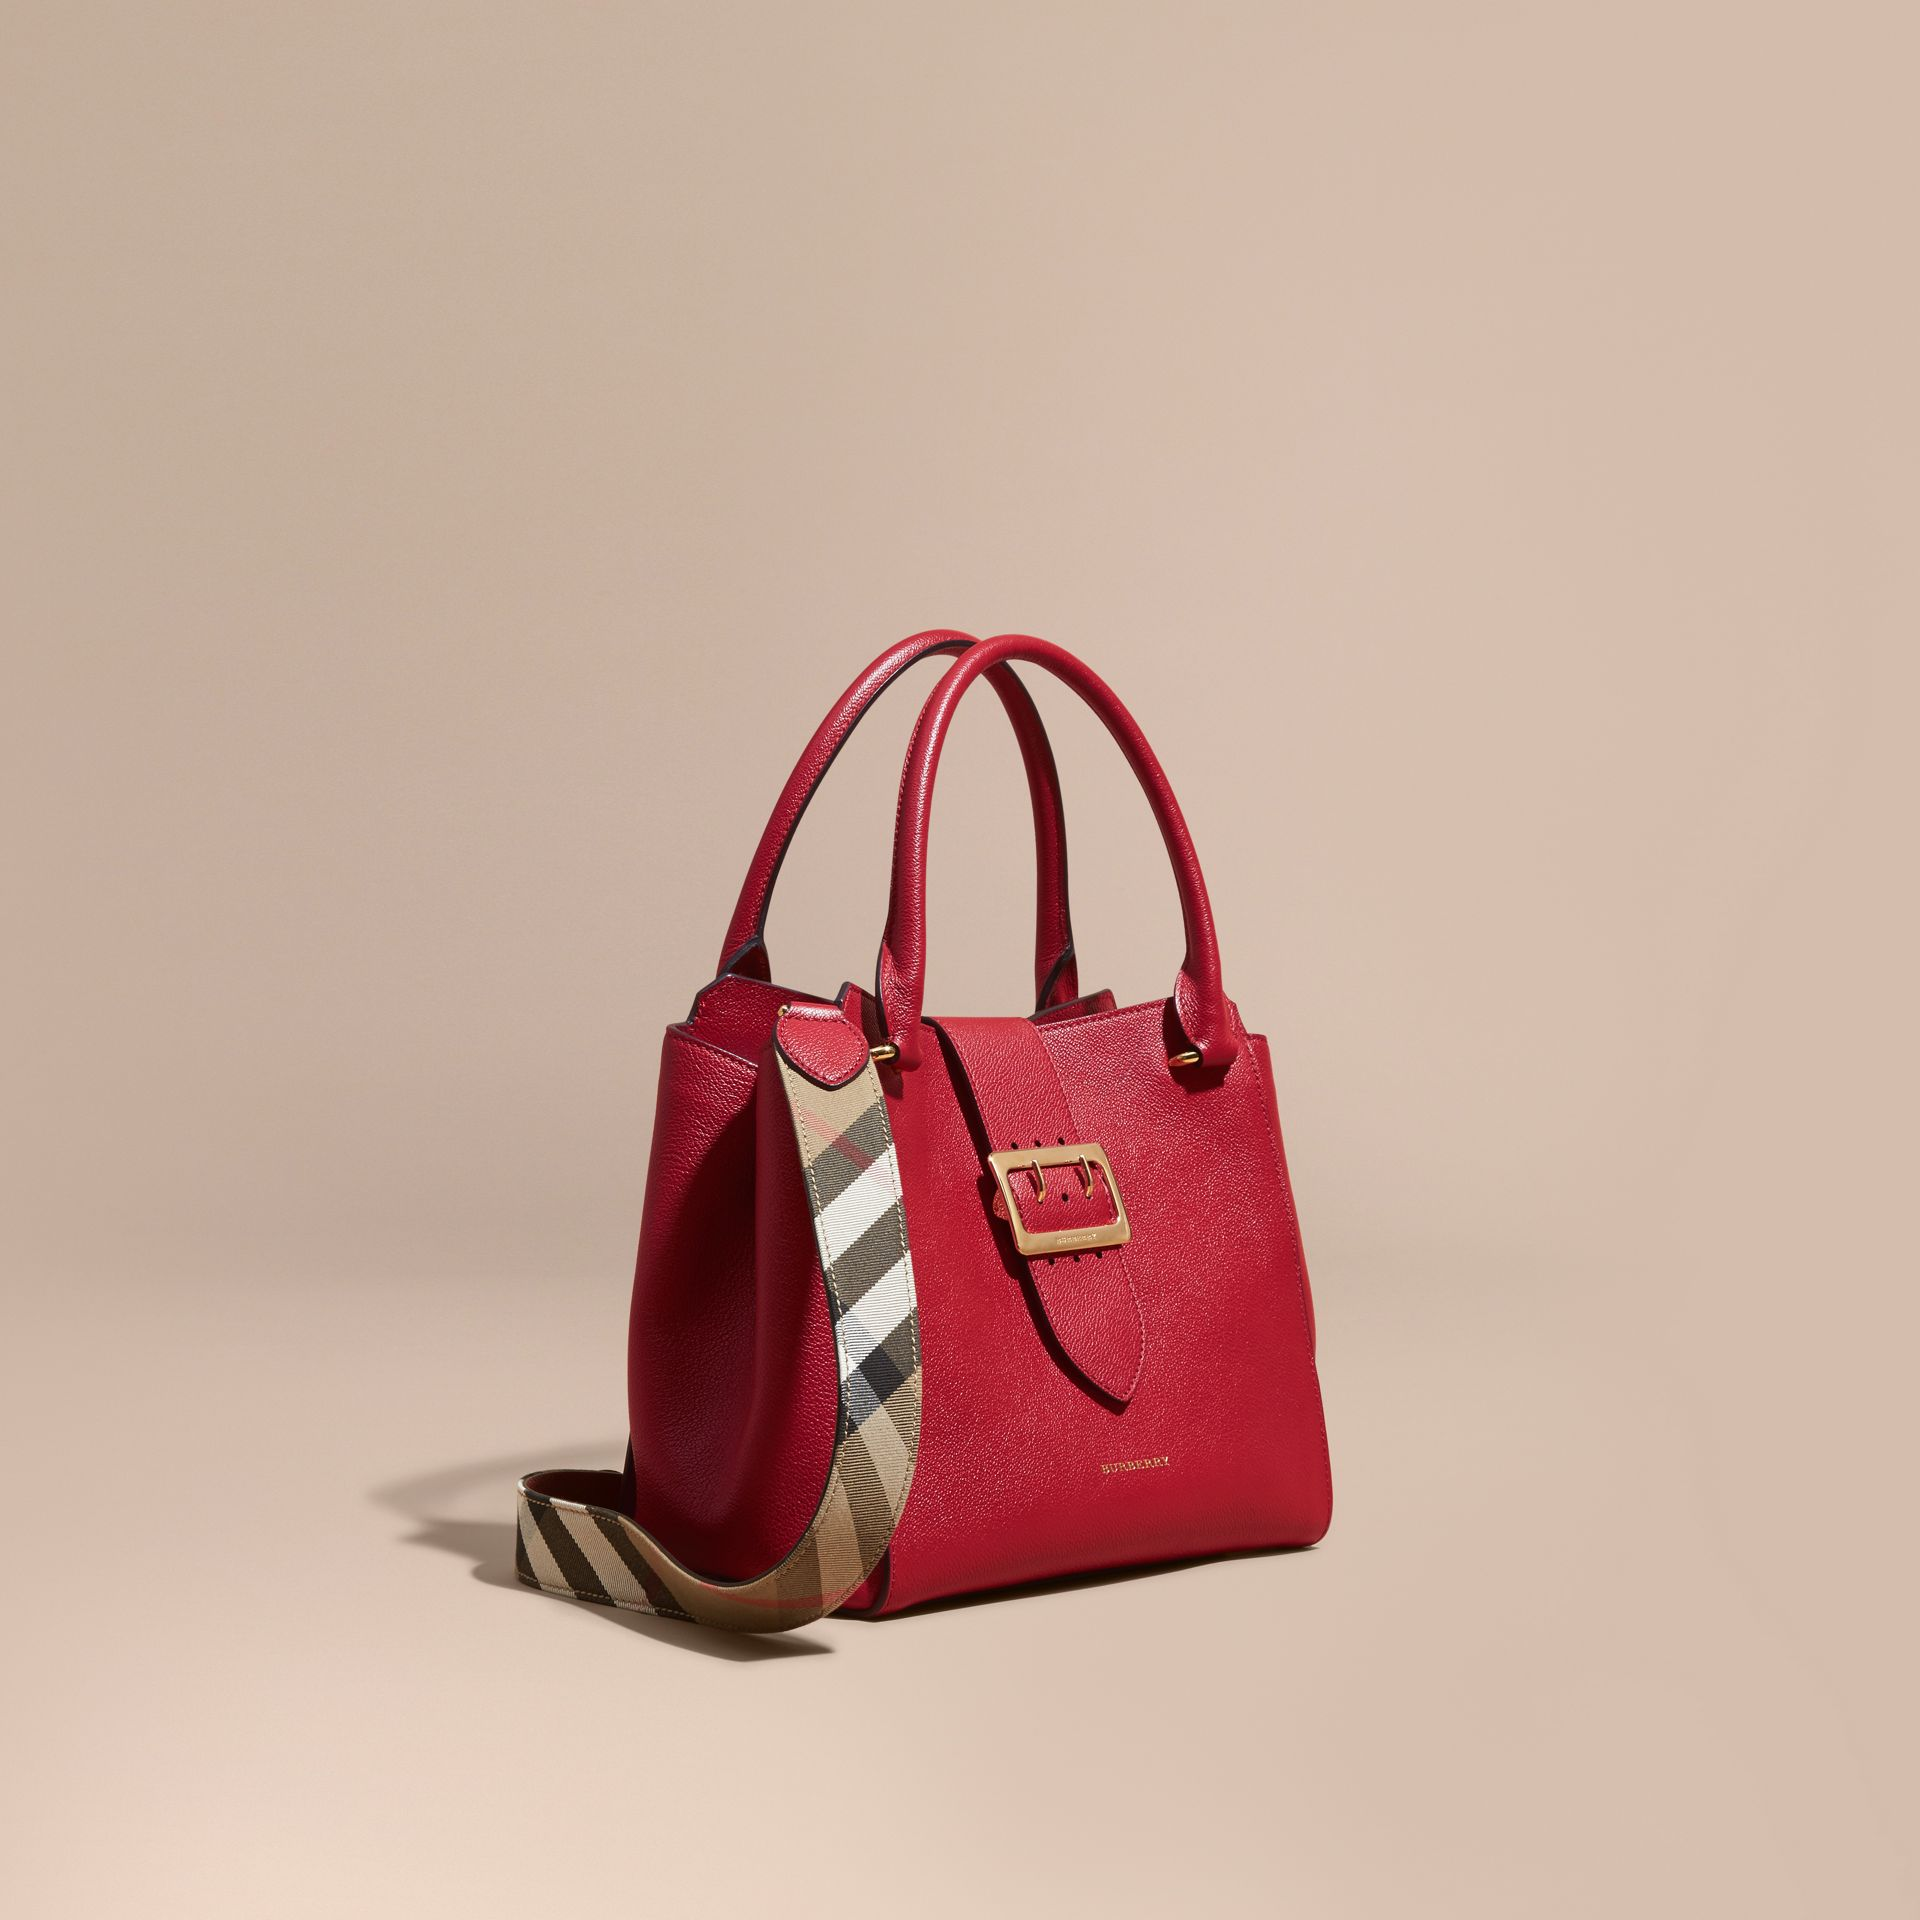 The Medium Buckle Tote in Grainy Leather in Parade Red - Women | Burberry - gallery image 1